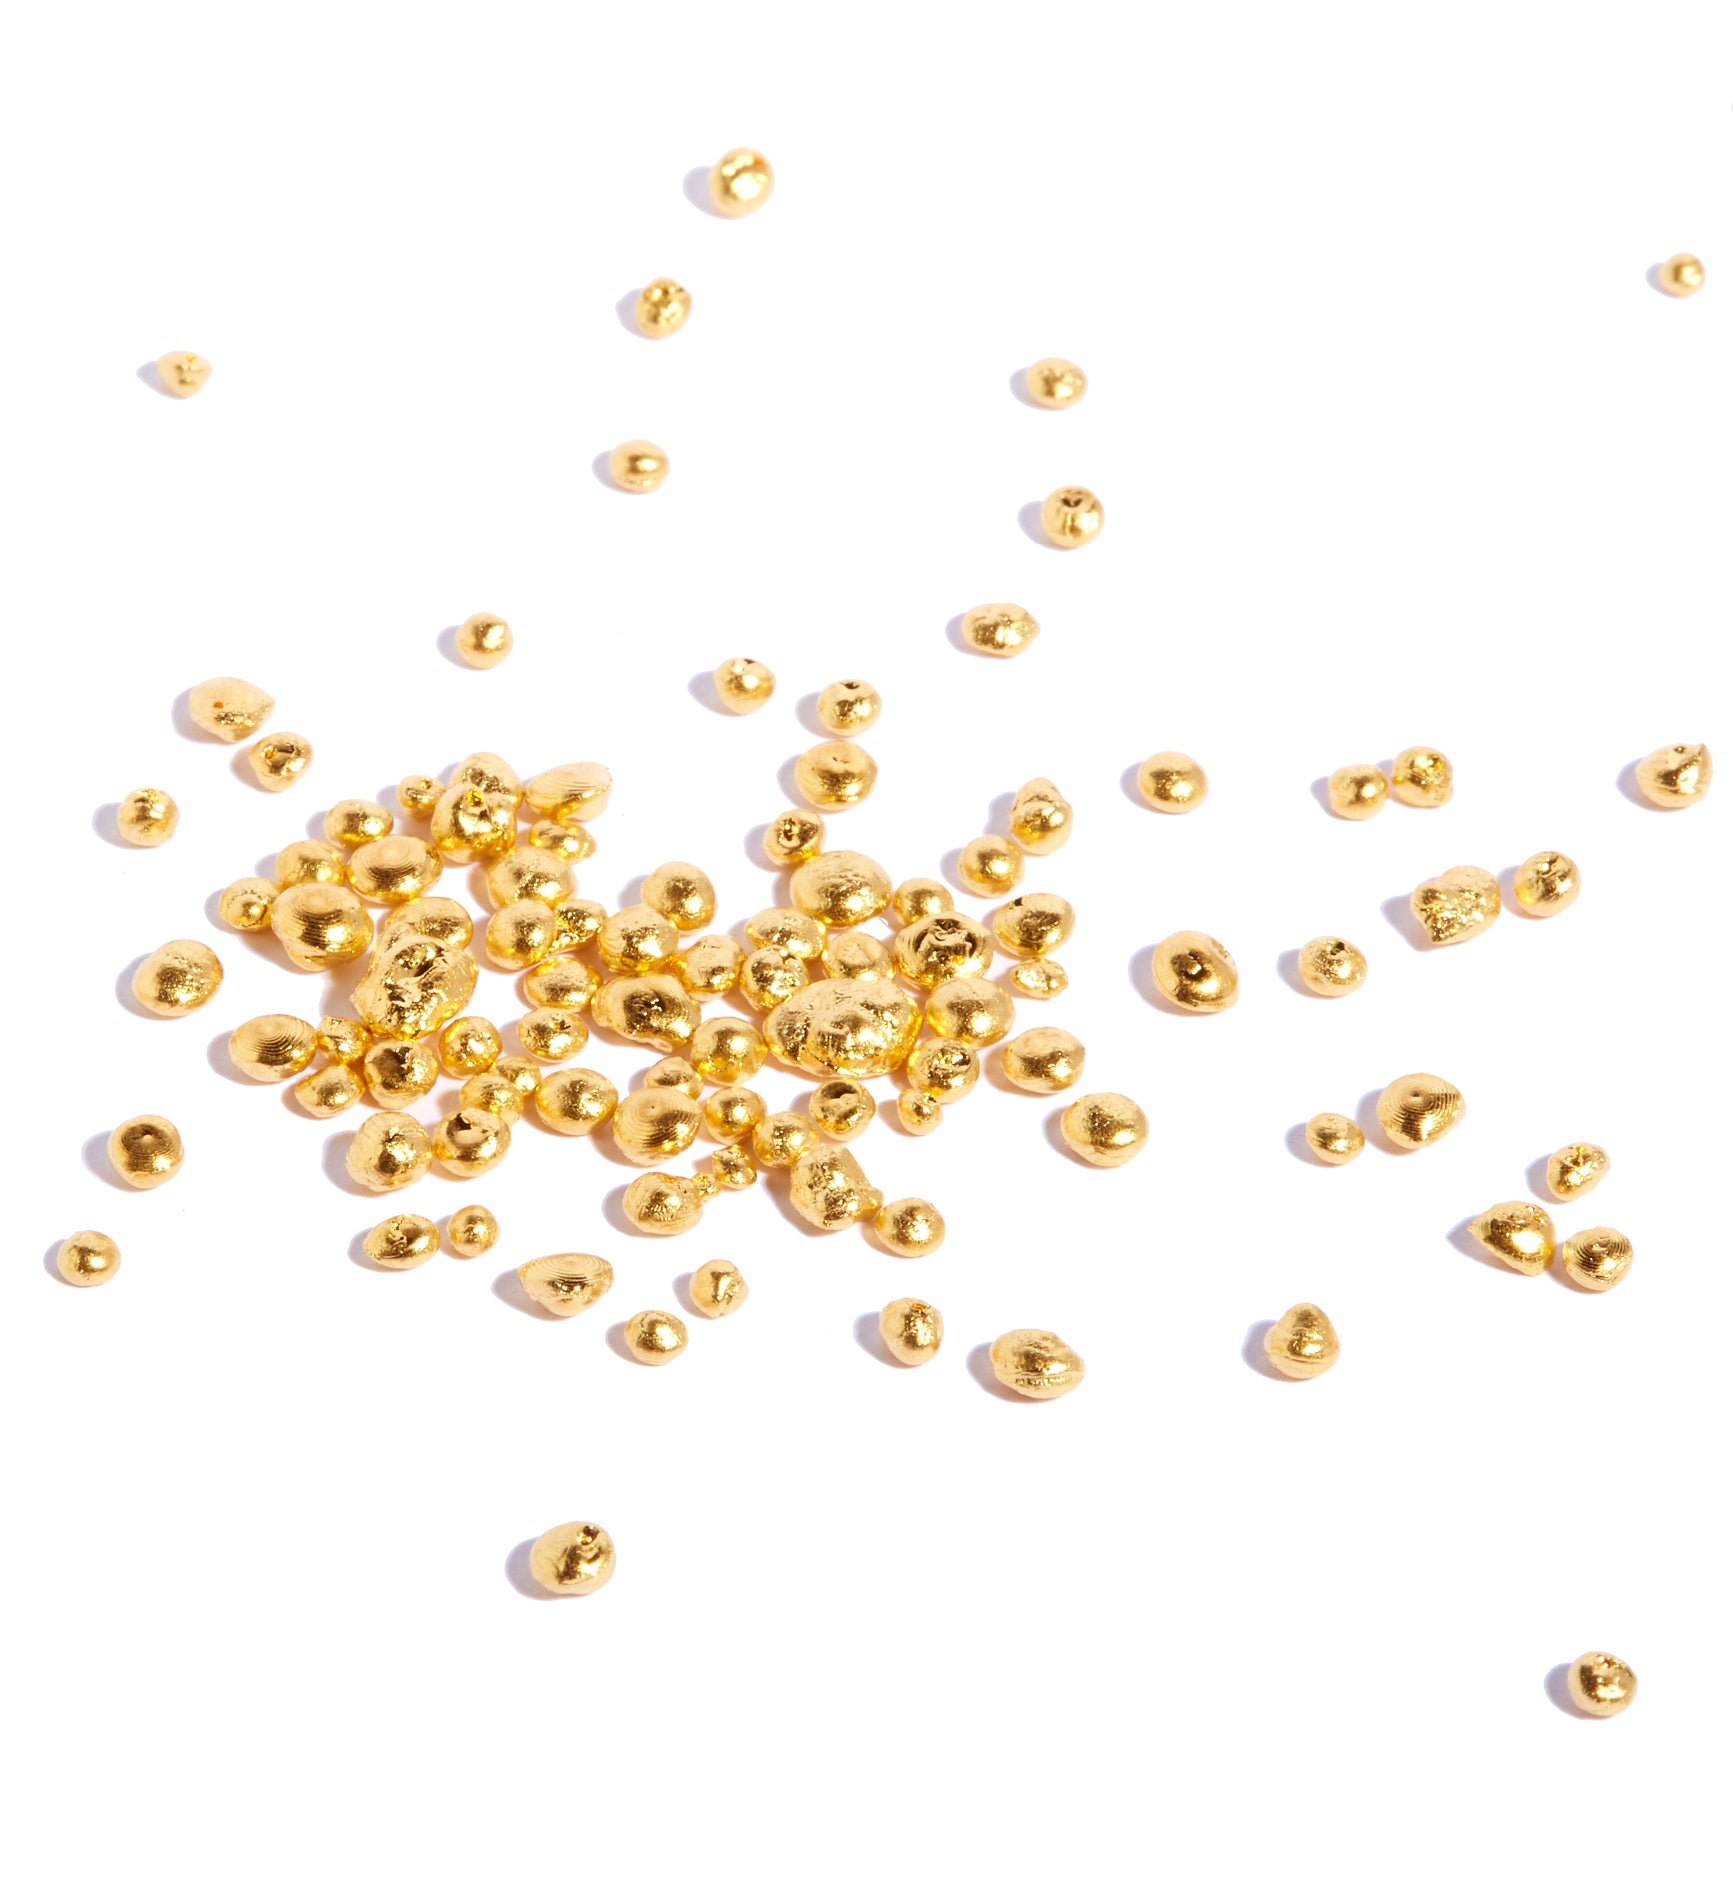 https://cdn.shopify.com/s/files/1/0571/9261/t/15/assets/gold%20granules-1509664458358.jpg?2926472938820055183